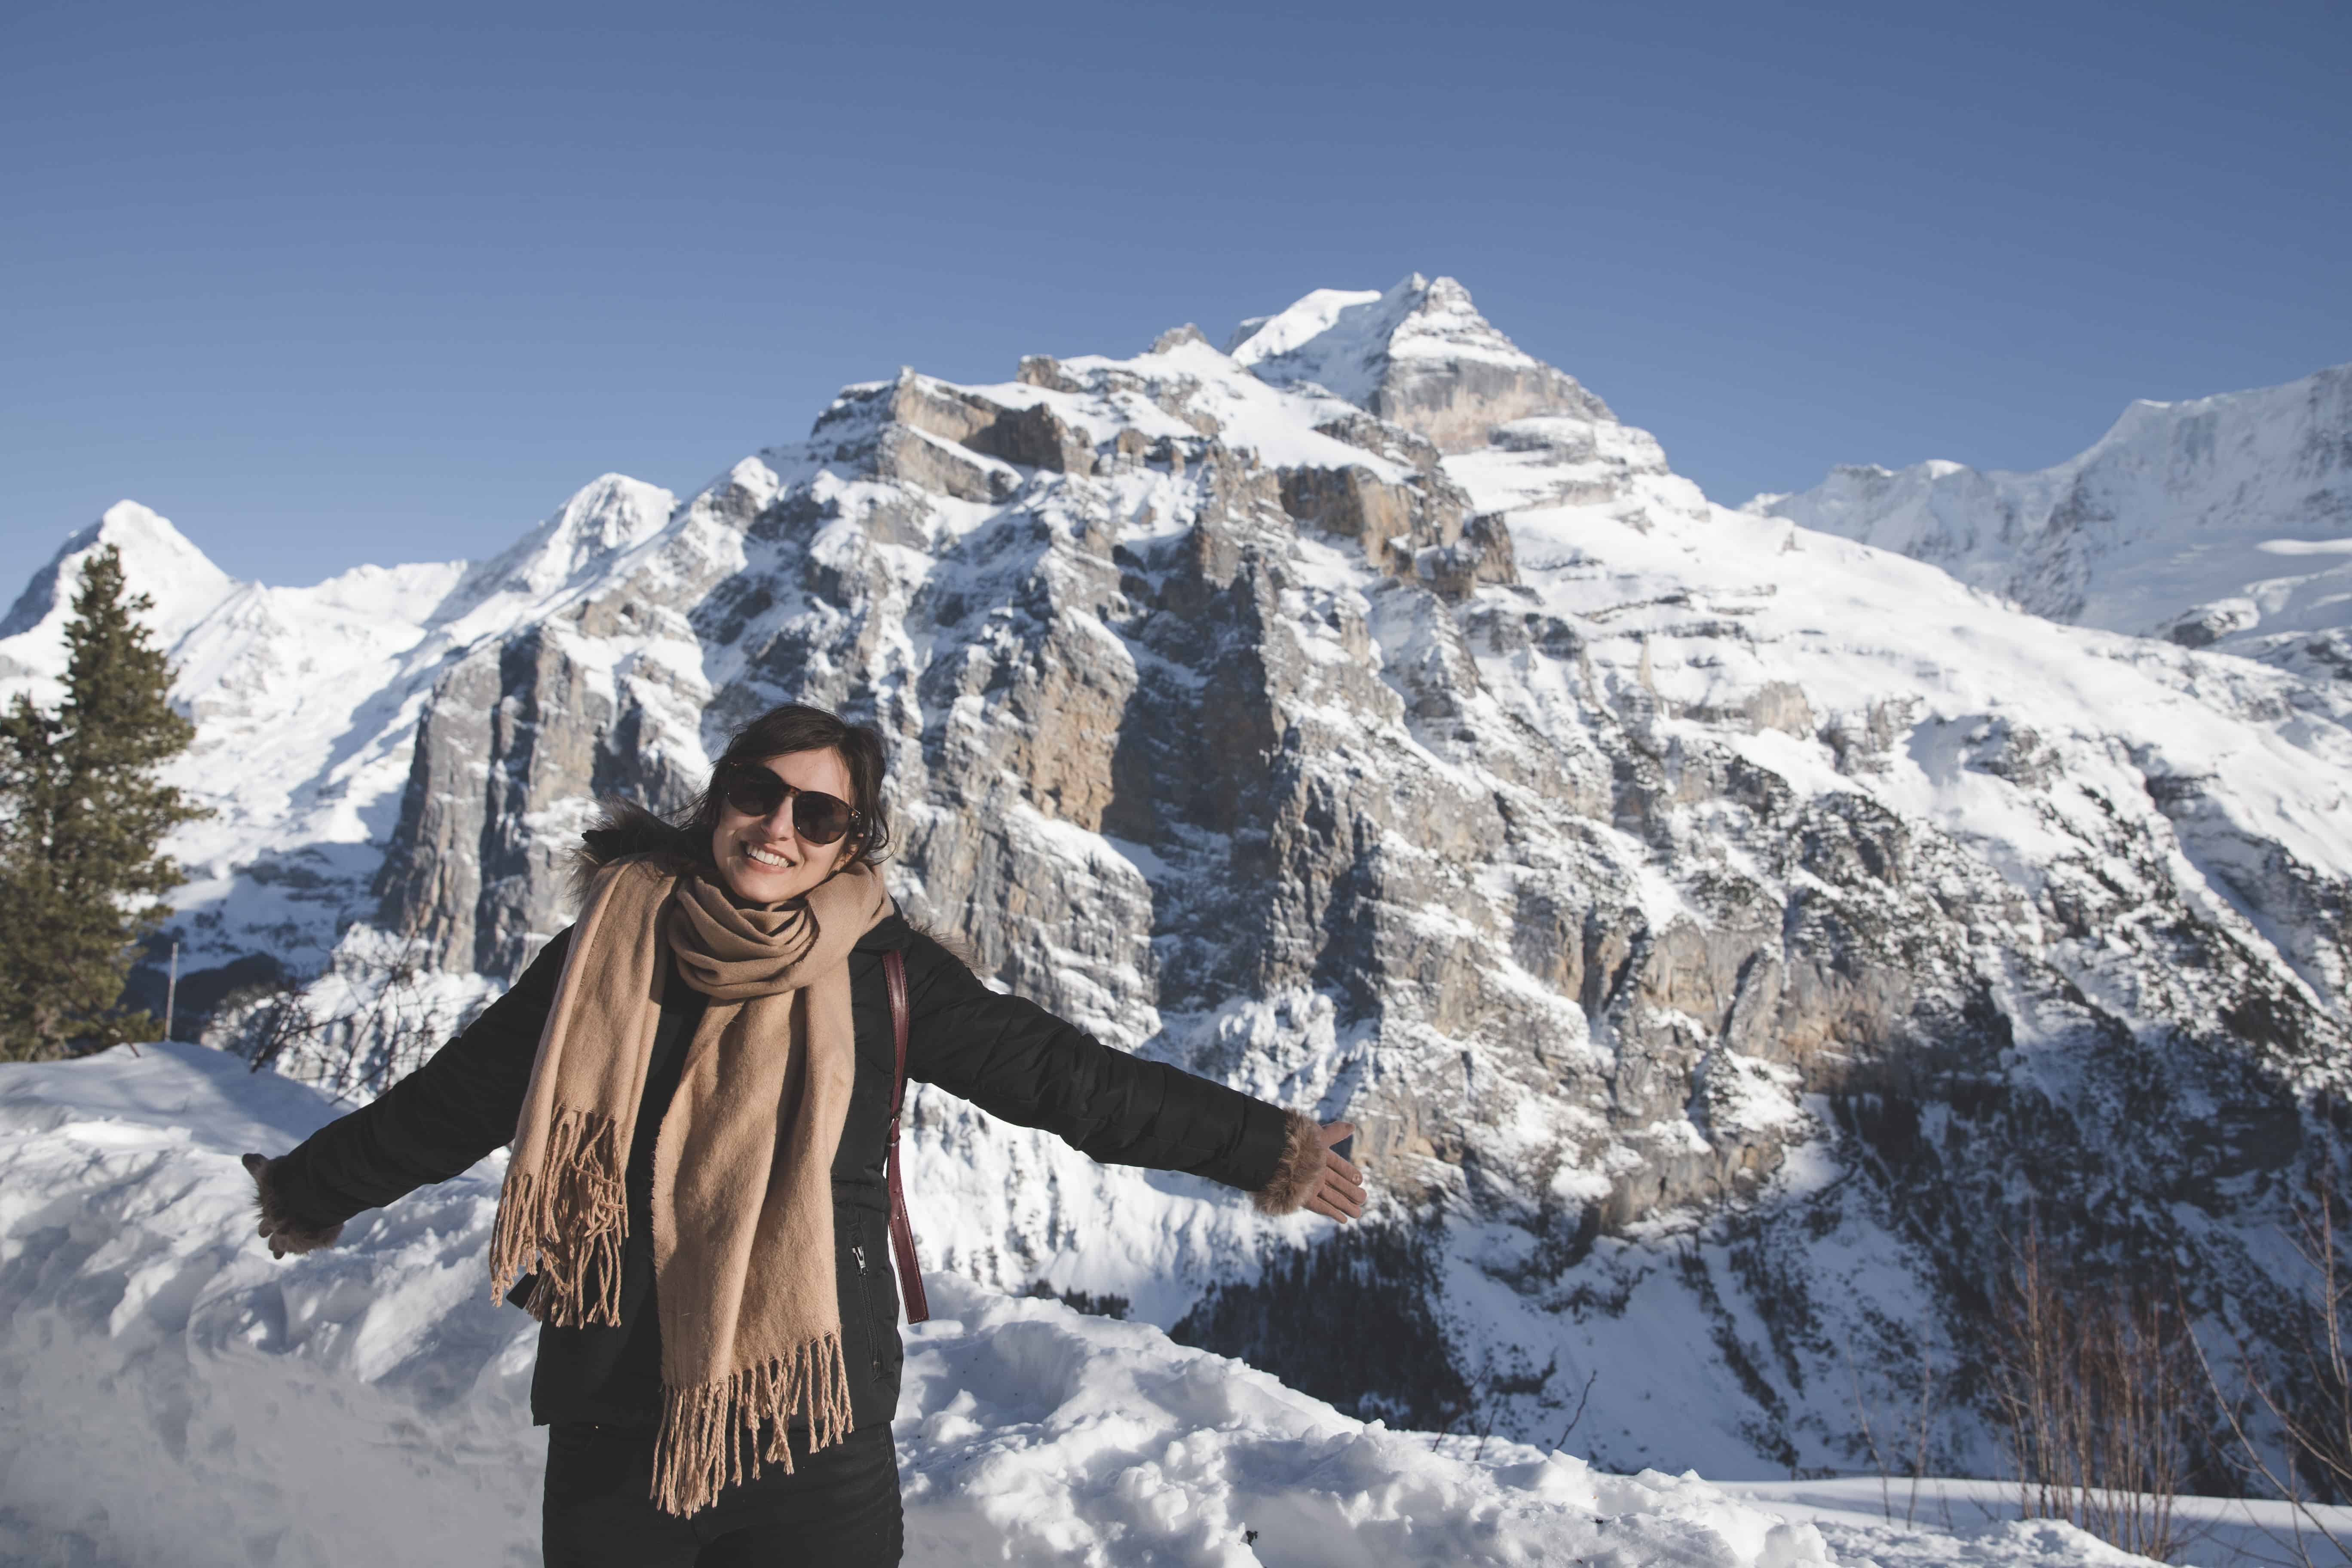 Kelsey in front of a mountain in Mürren in Switzerland on a sunny, snowy day in winter wearing winter clothes